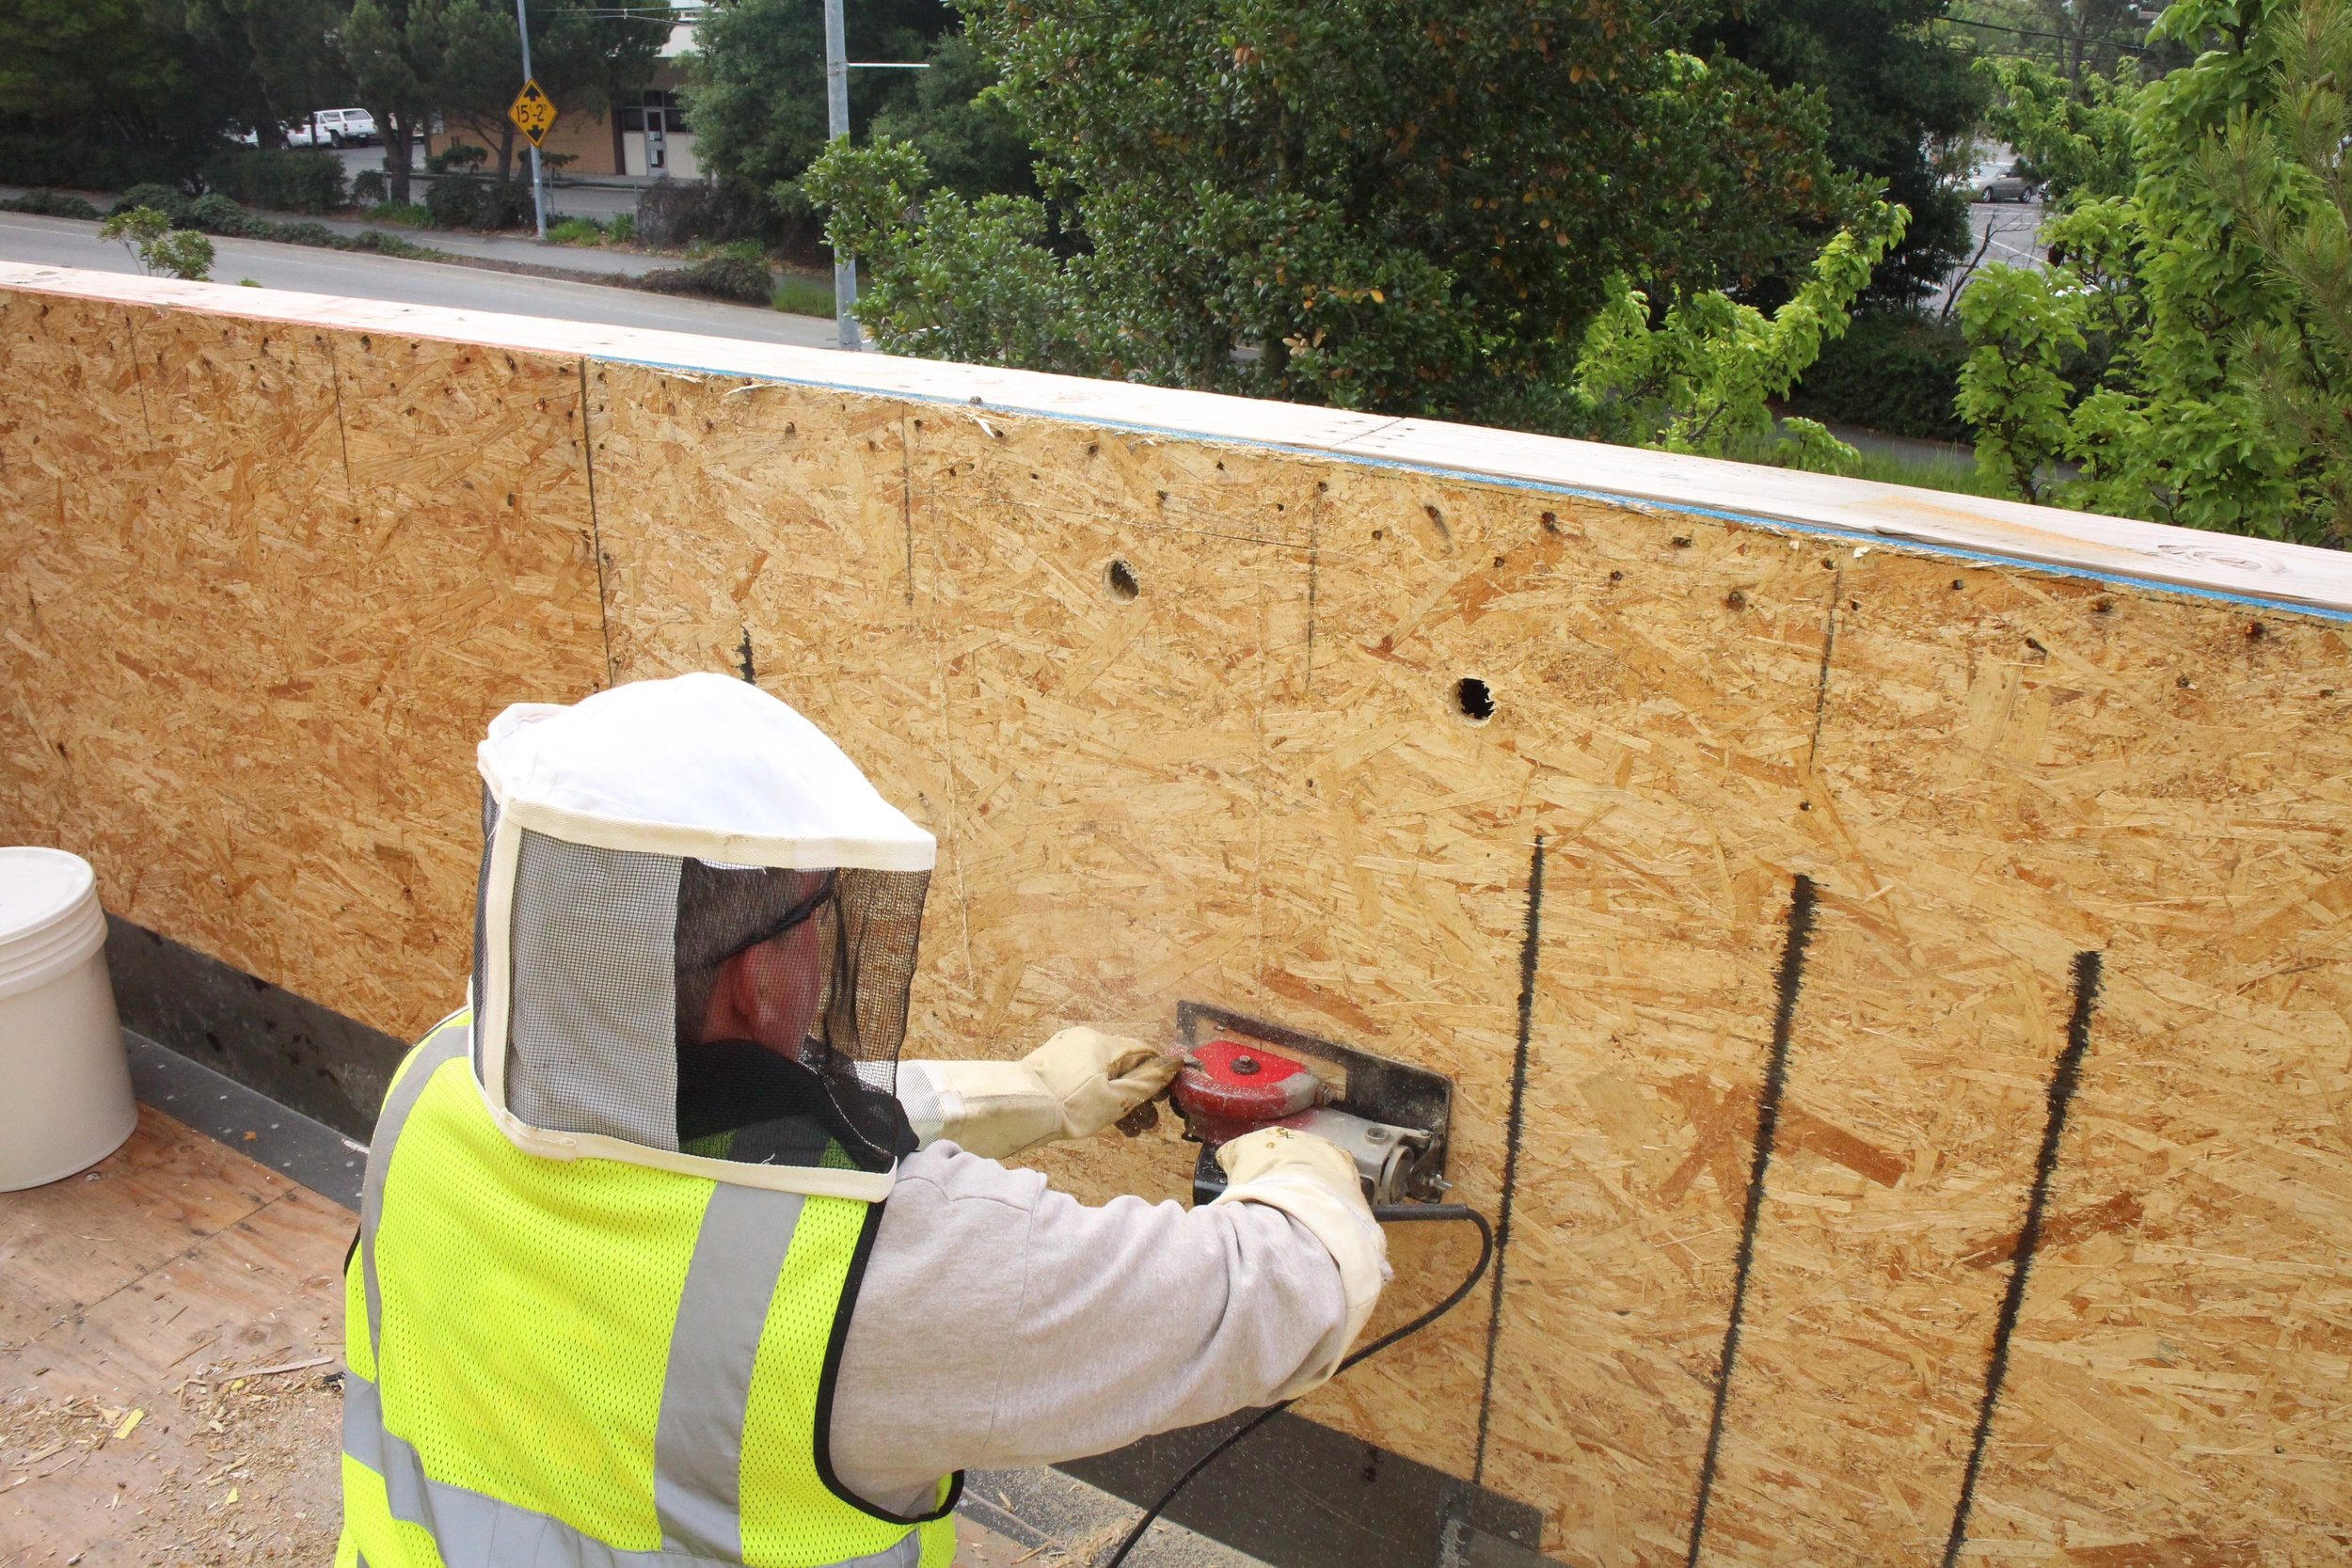 Joe is cutting open the panel to expose the hive. Notice the two bore holes to determine exact hive location.